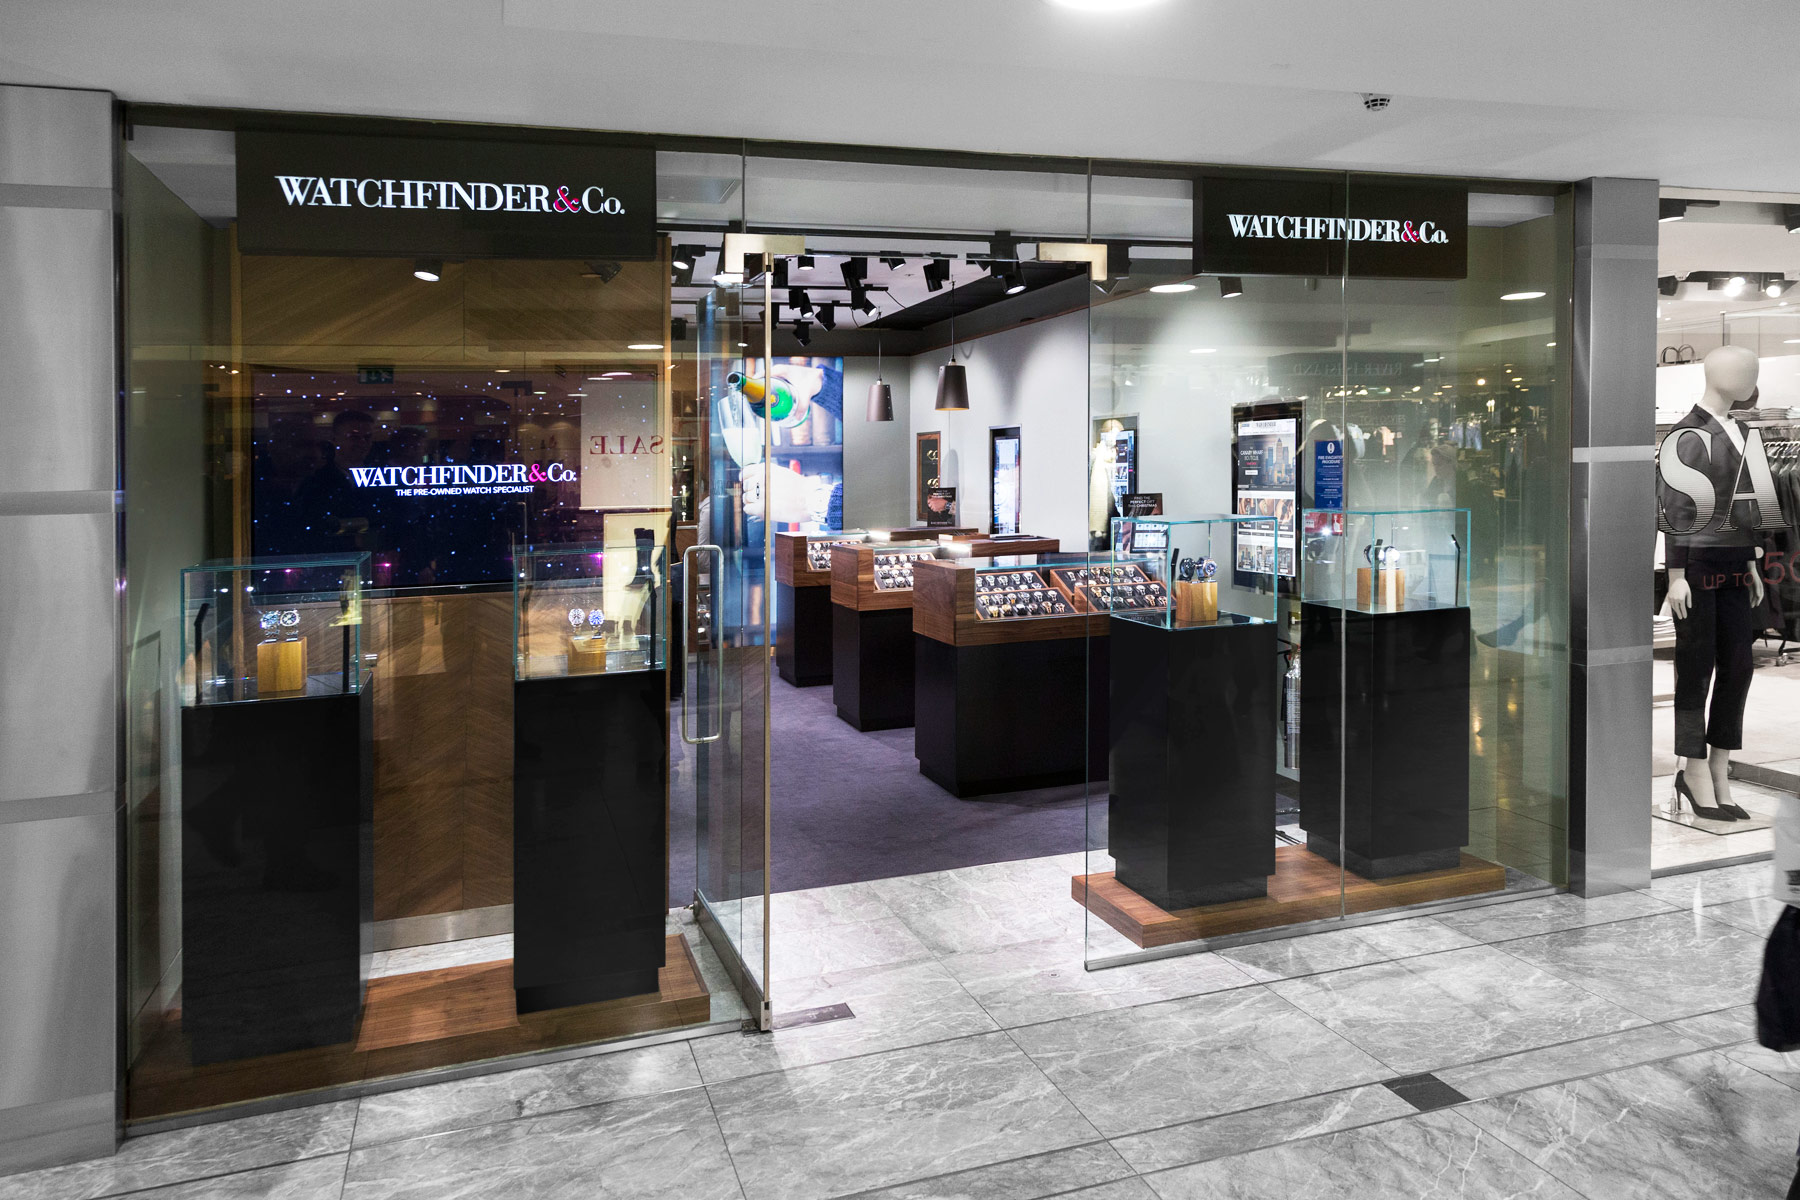 Watchfinder Opens Store In Canary Wharf With Support From HSBC